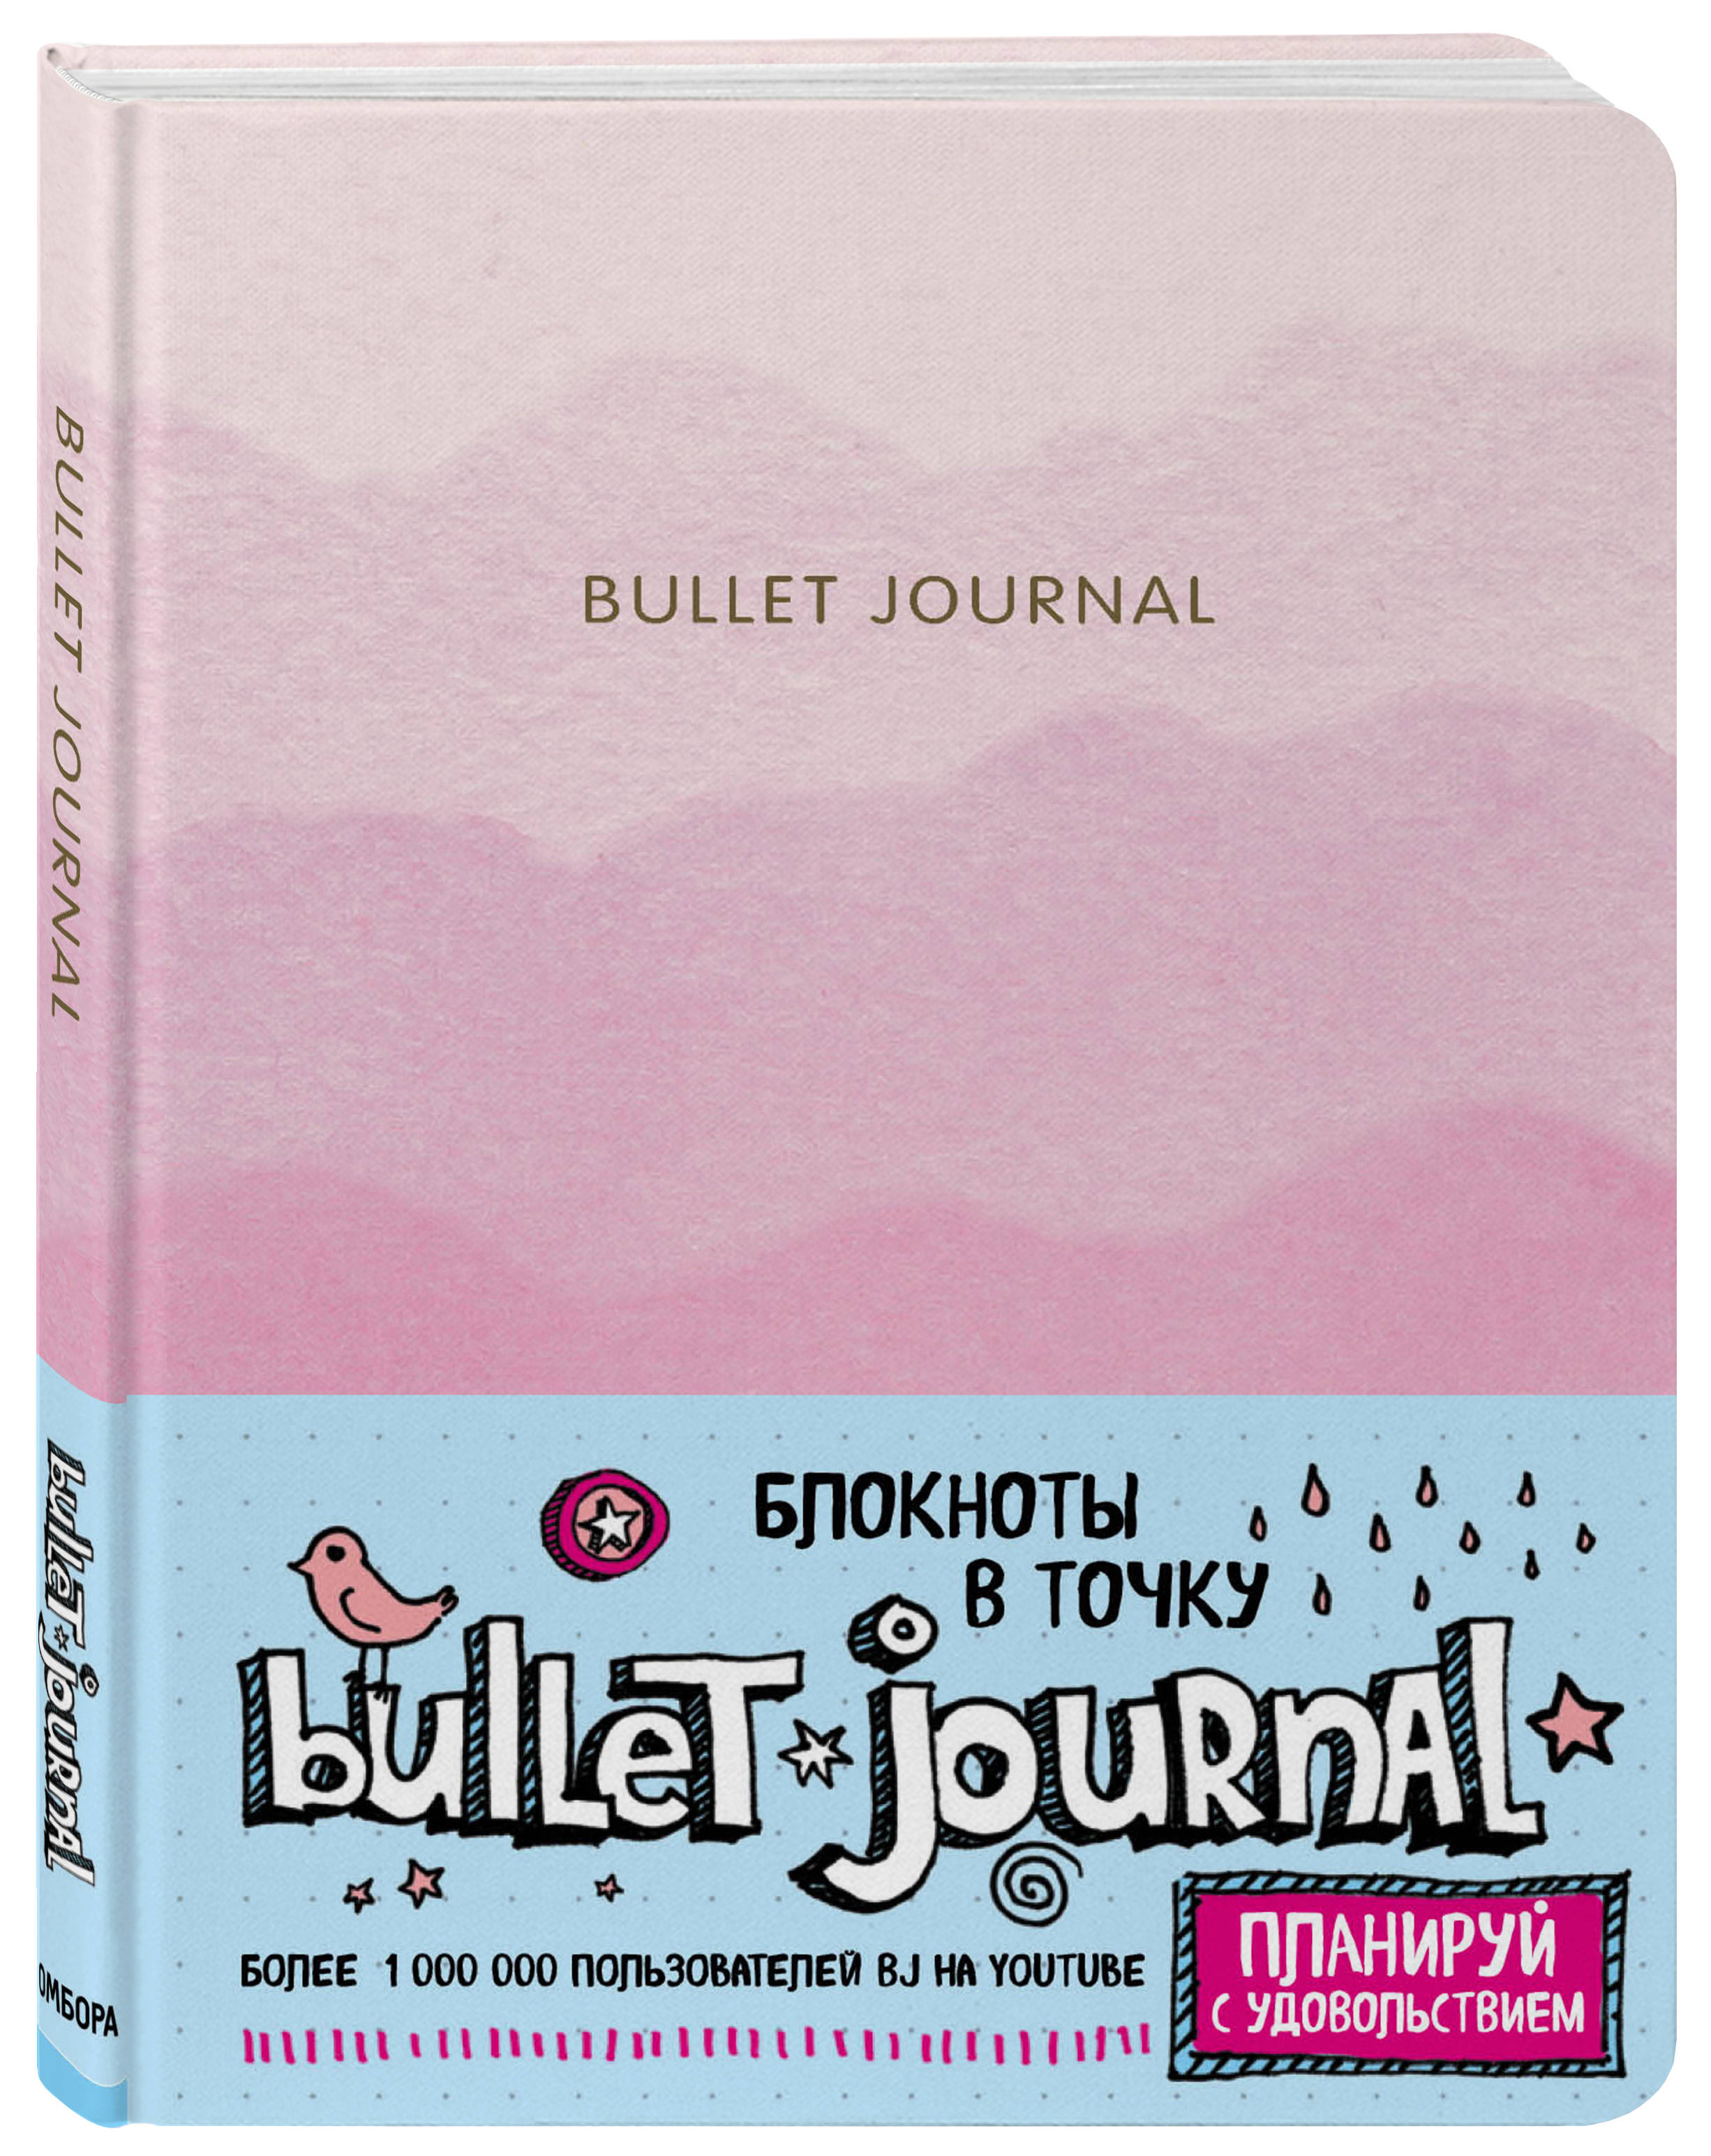 Блокнот в точку: Bullet Journal (розовый) victoria s journals bullet journal tex chic hard cover notebook dotted bujo